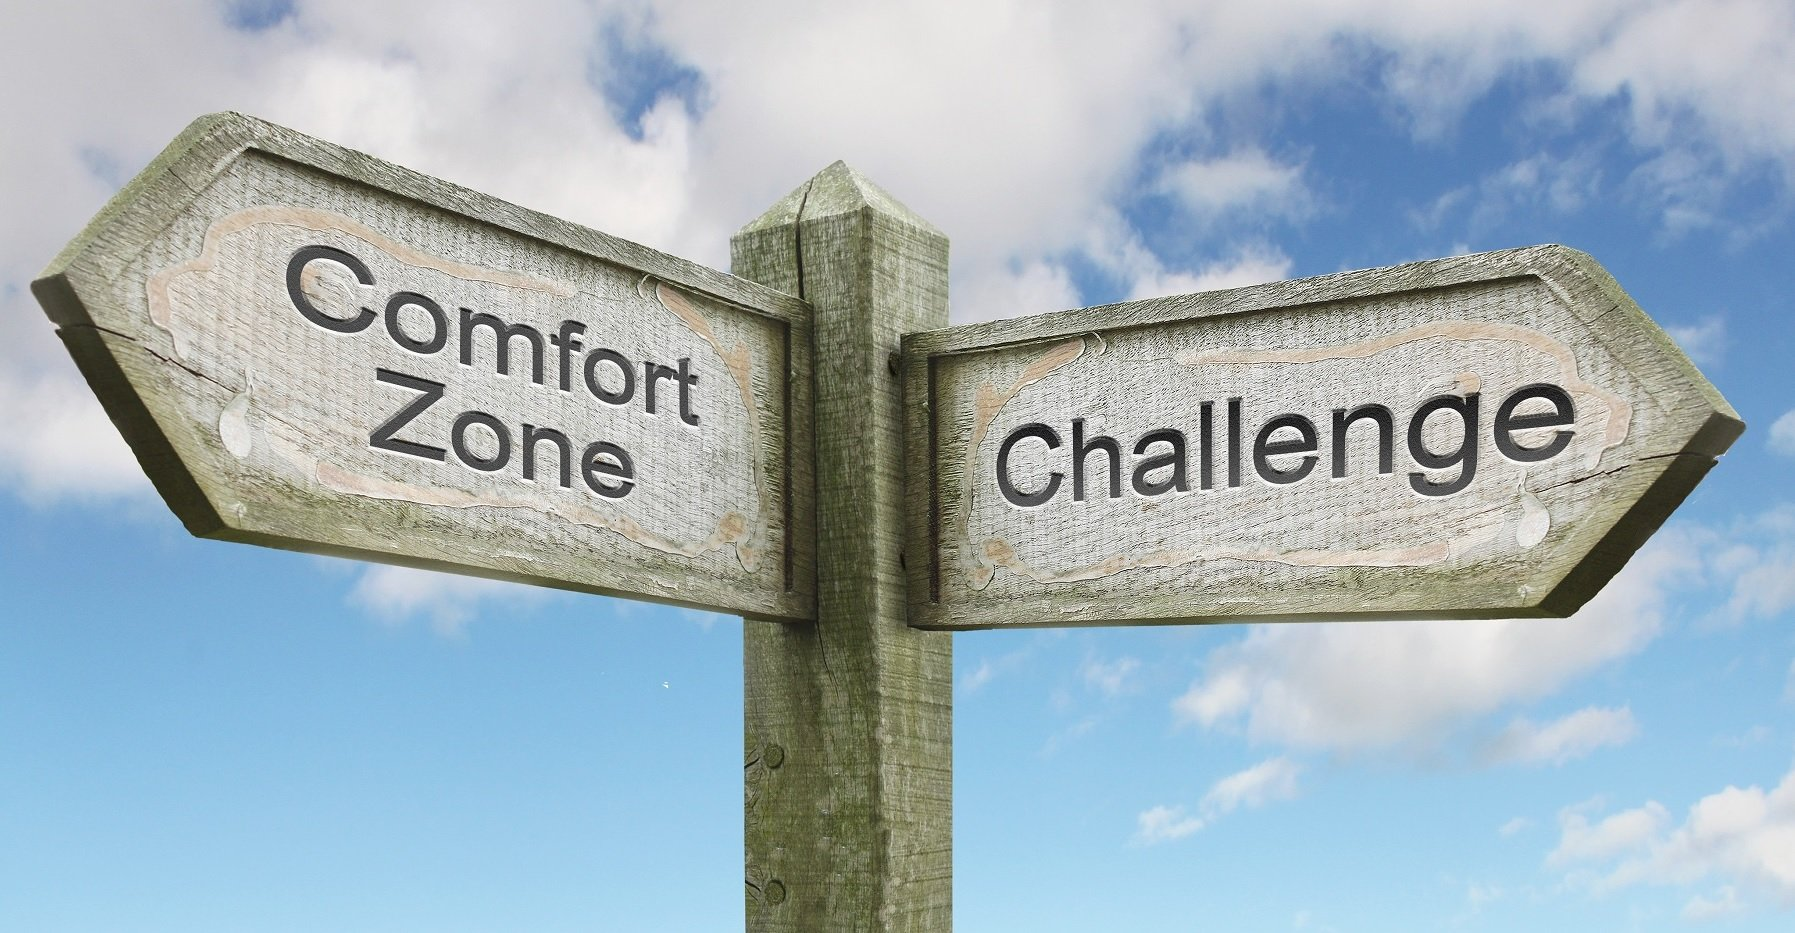 The 30 day mindset challenge will you succeed 2ndskies for Confort zone